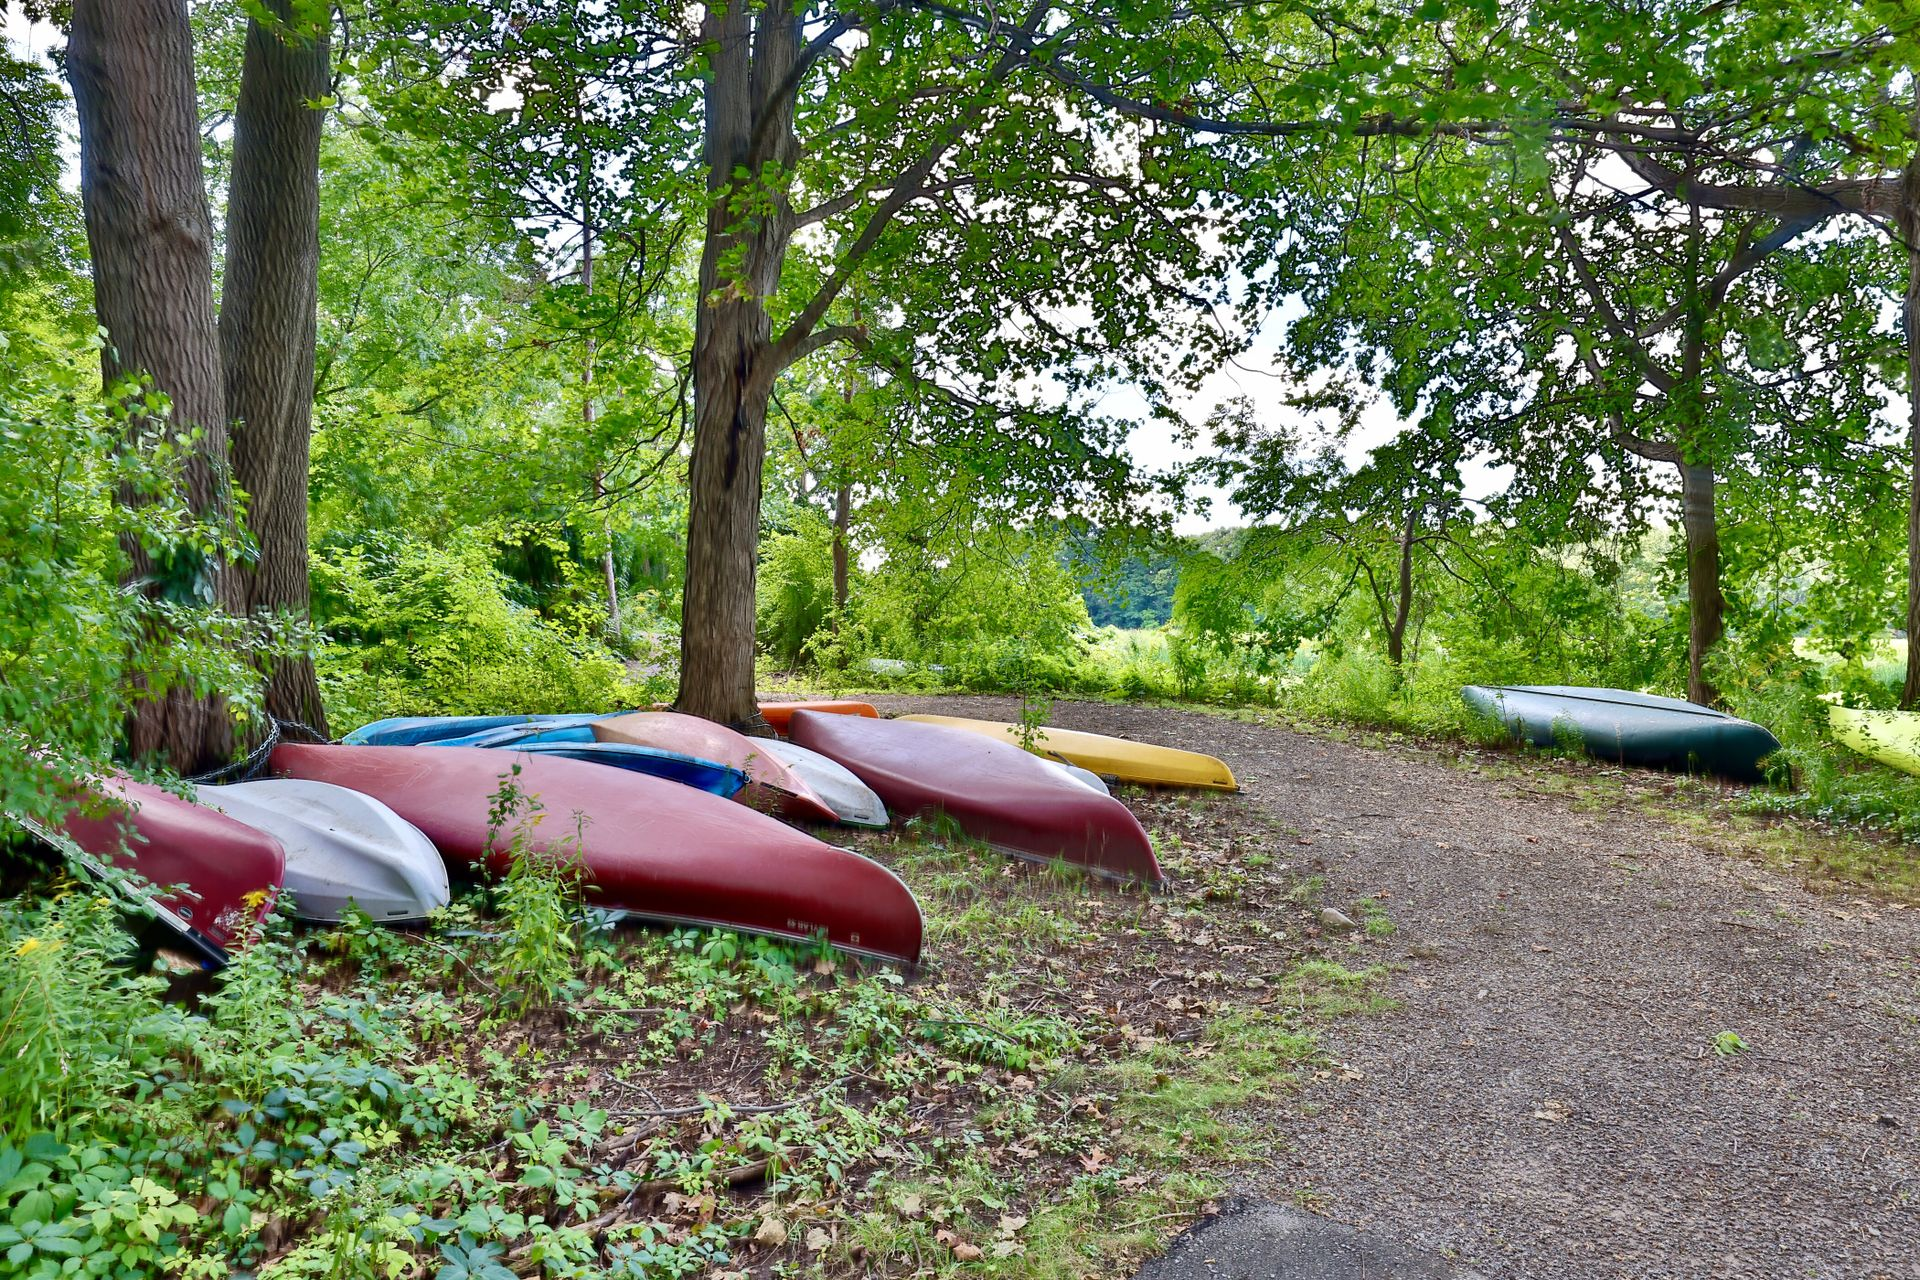 Canoes at the River at 403 - 2511 Lakeshore Road West, Bronte West, Oakville